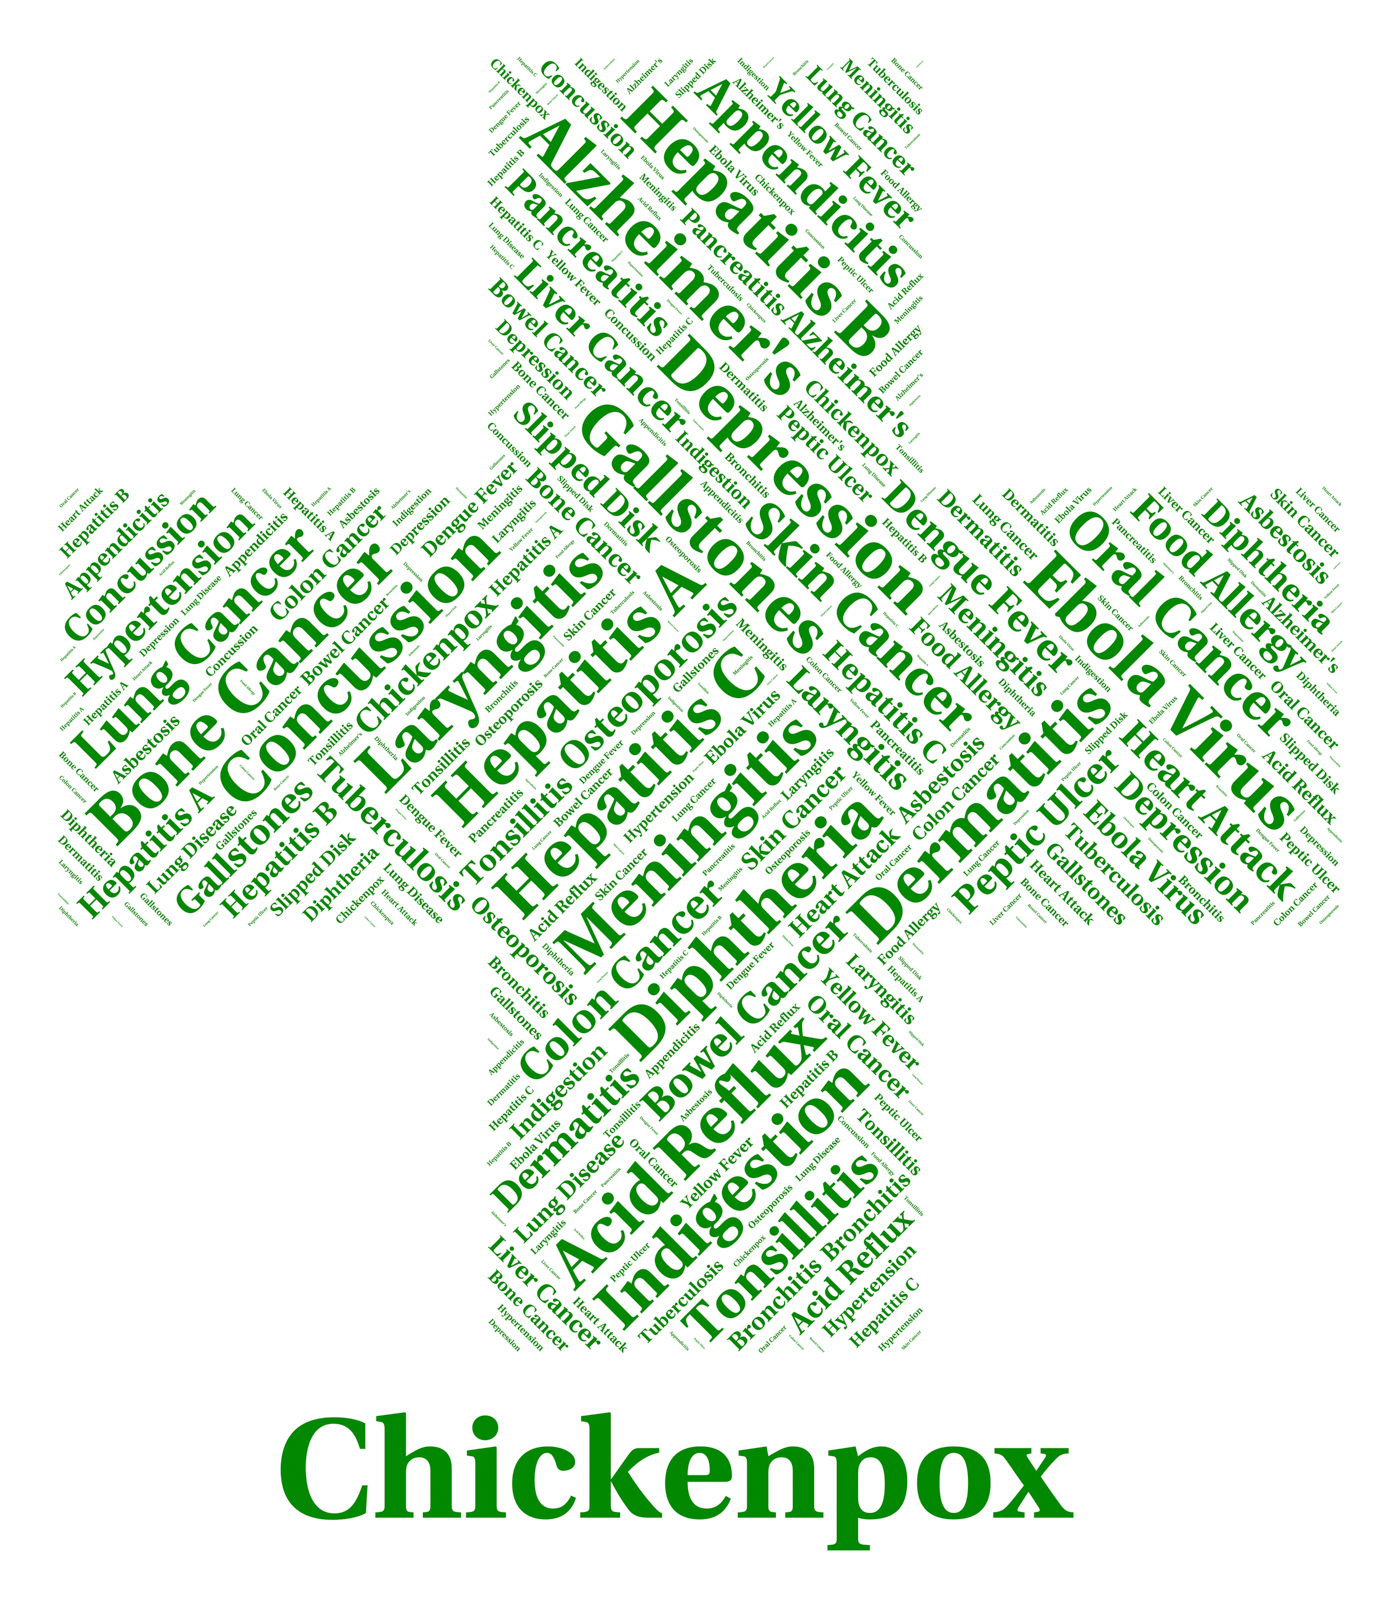 Free photo chickenpox illness represents poor health and chickenpox illness represents poor health and affliction biocorpaavc Image collections